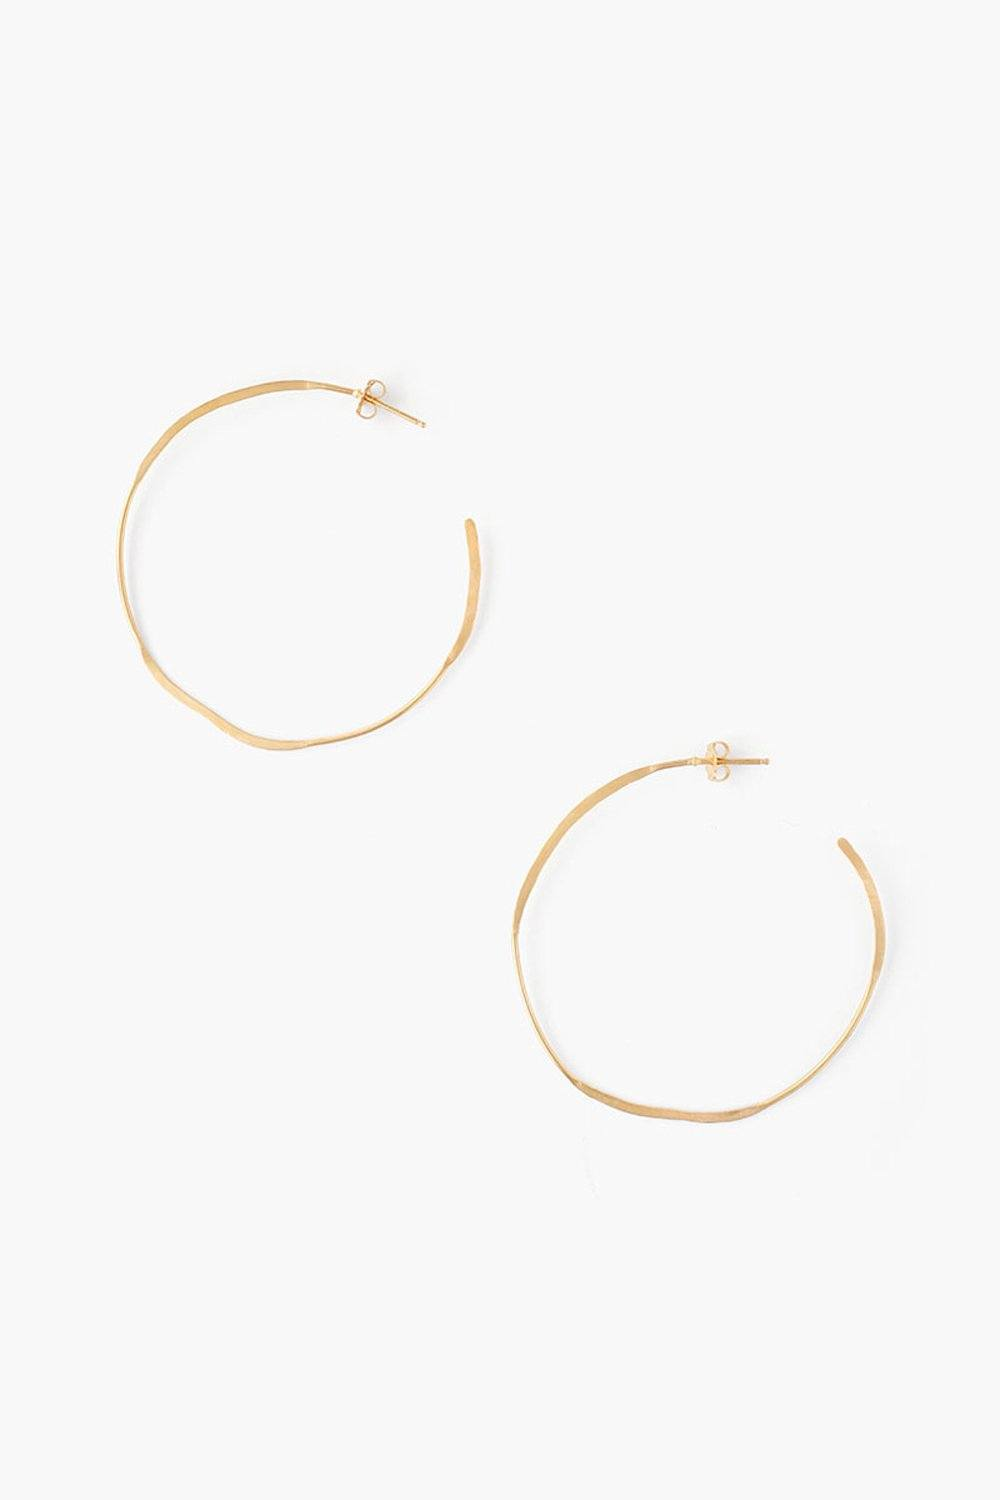 Yellow Gold Hammered Earrings